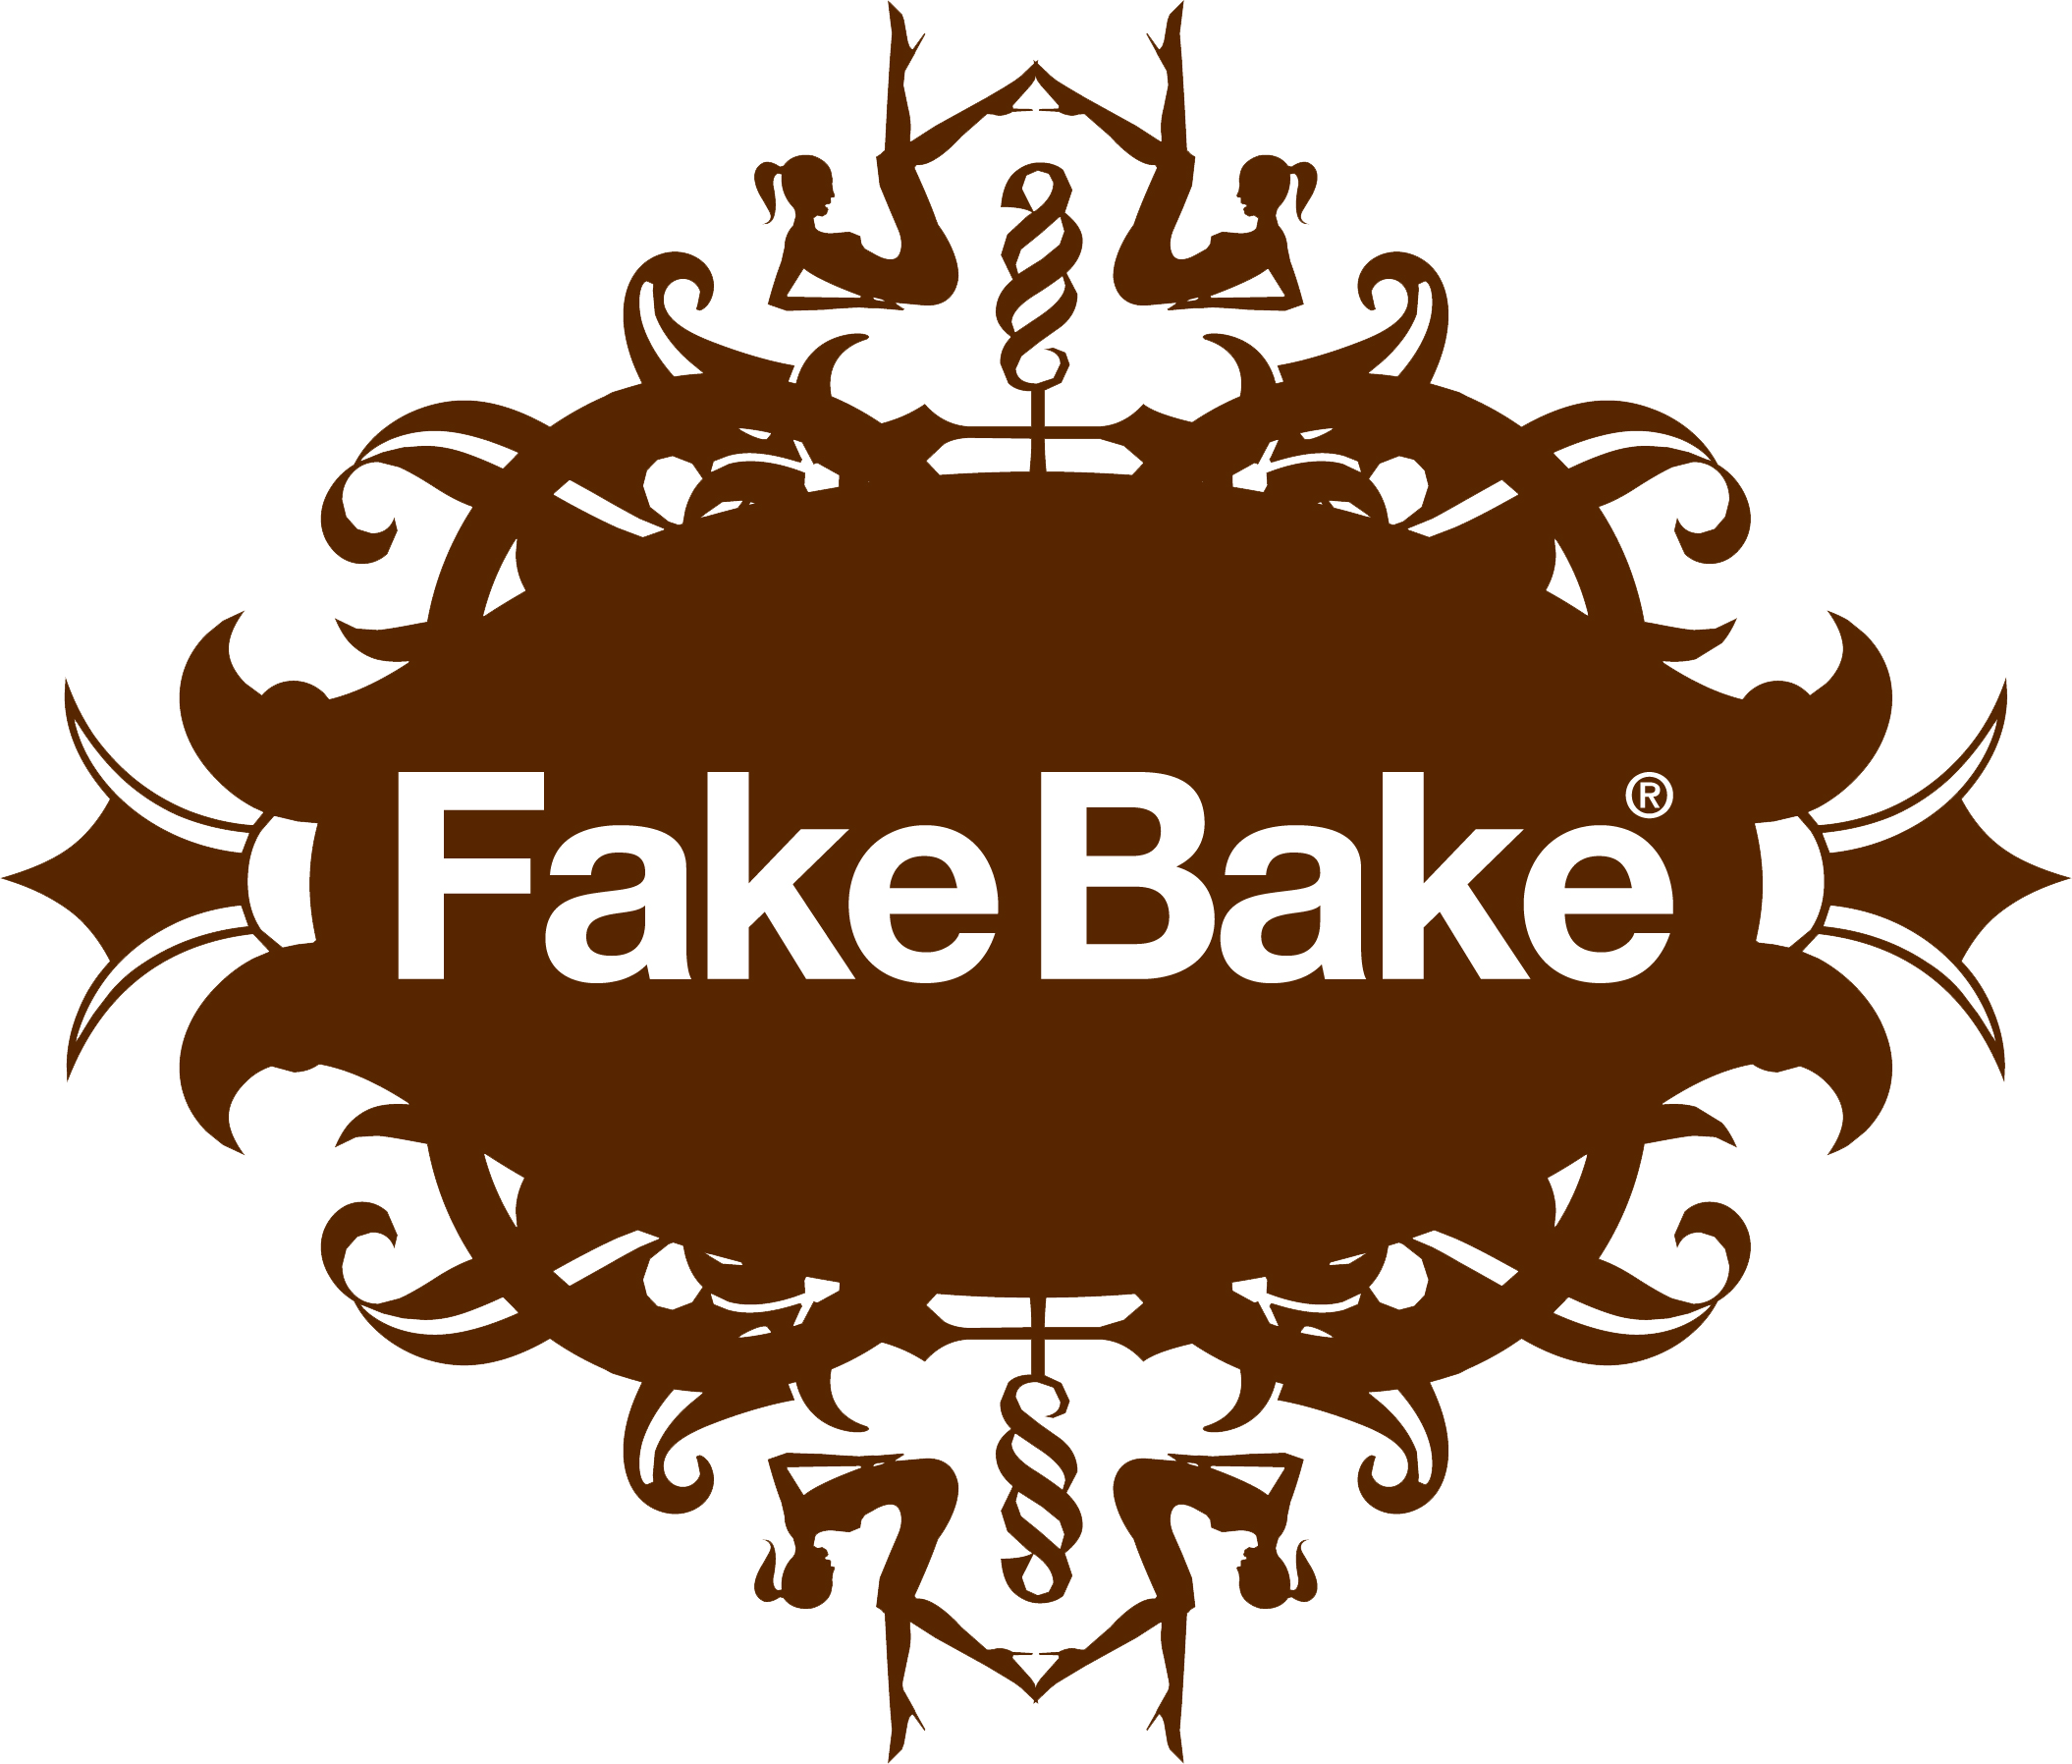 fake bake mobile spray tan